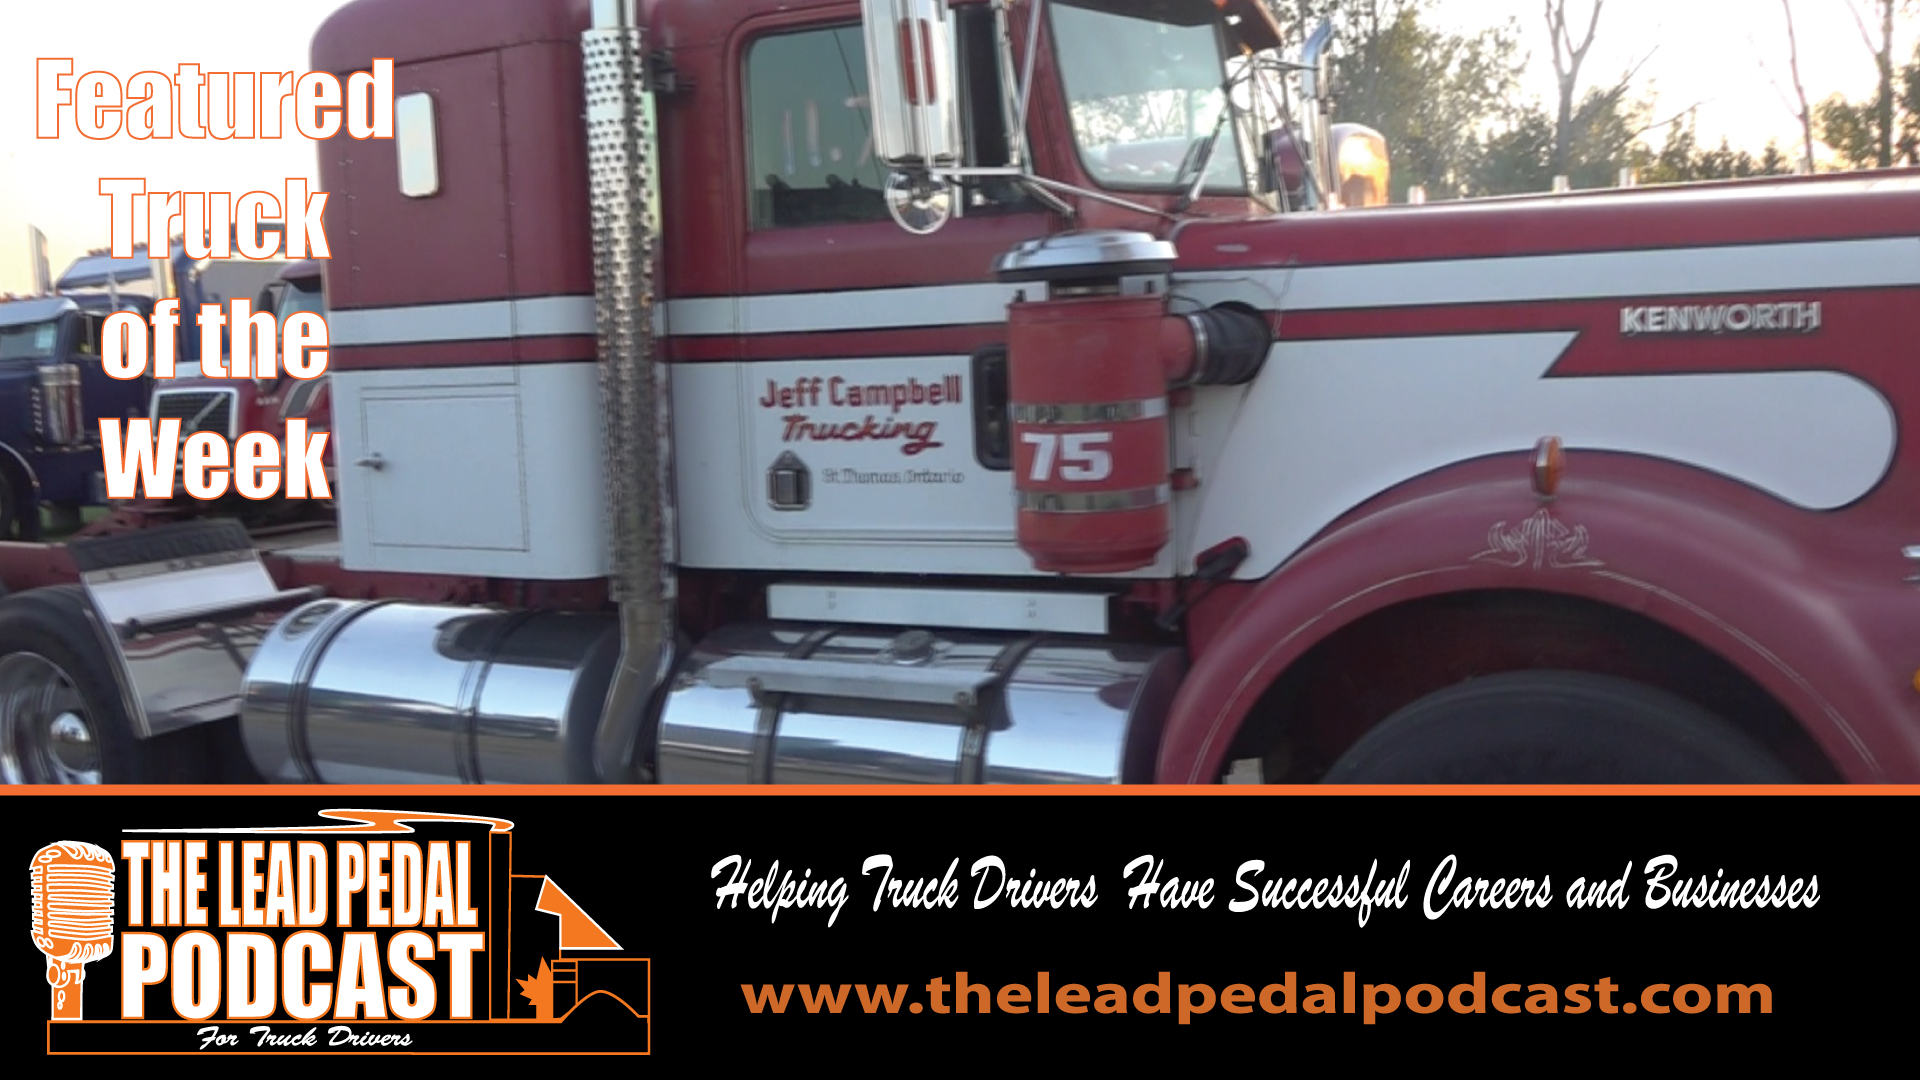 LP624 Featured Truck of the Week - Jeff Campbell's Kenworth